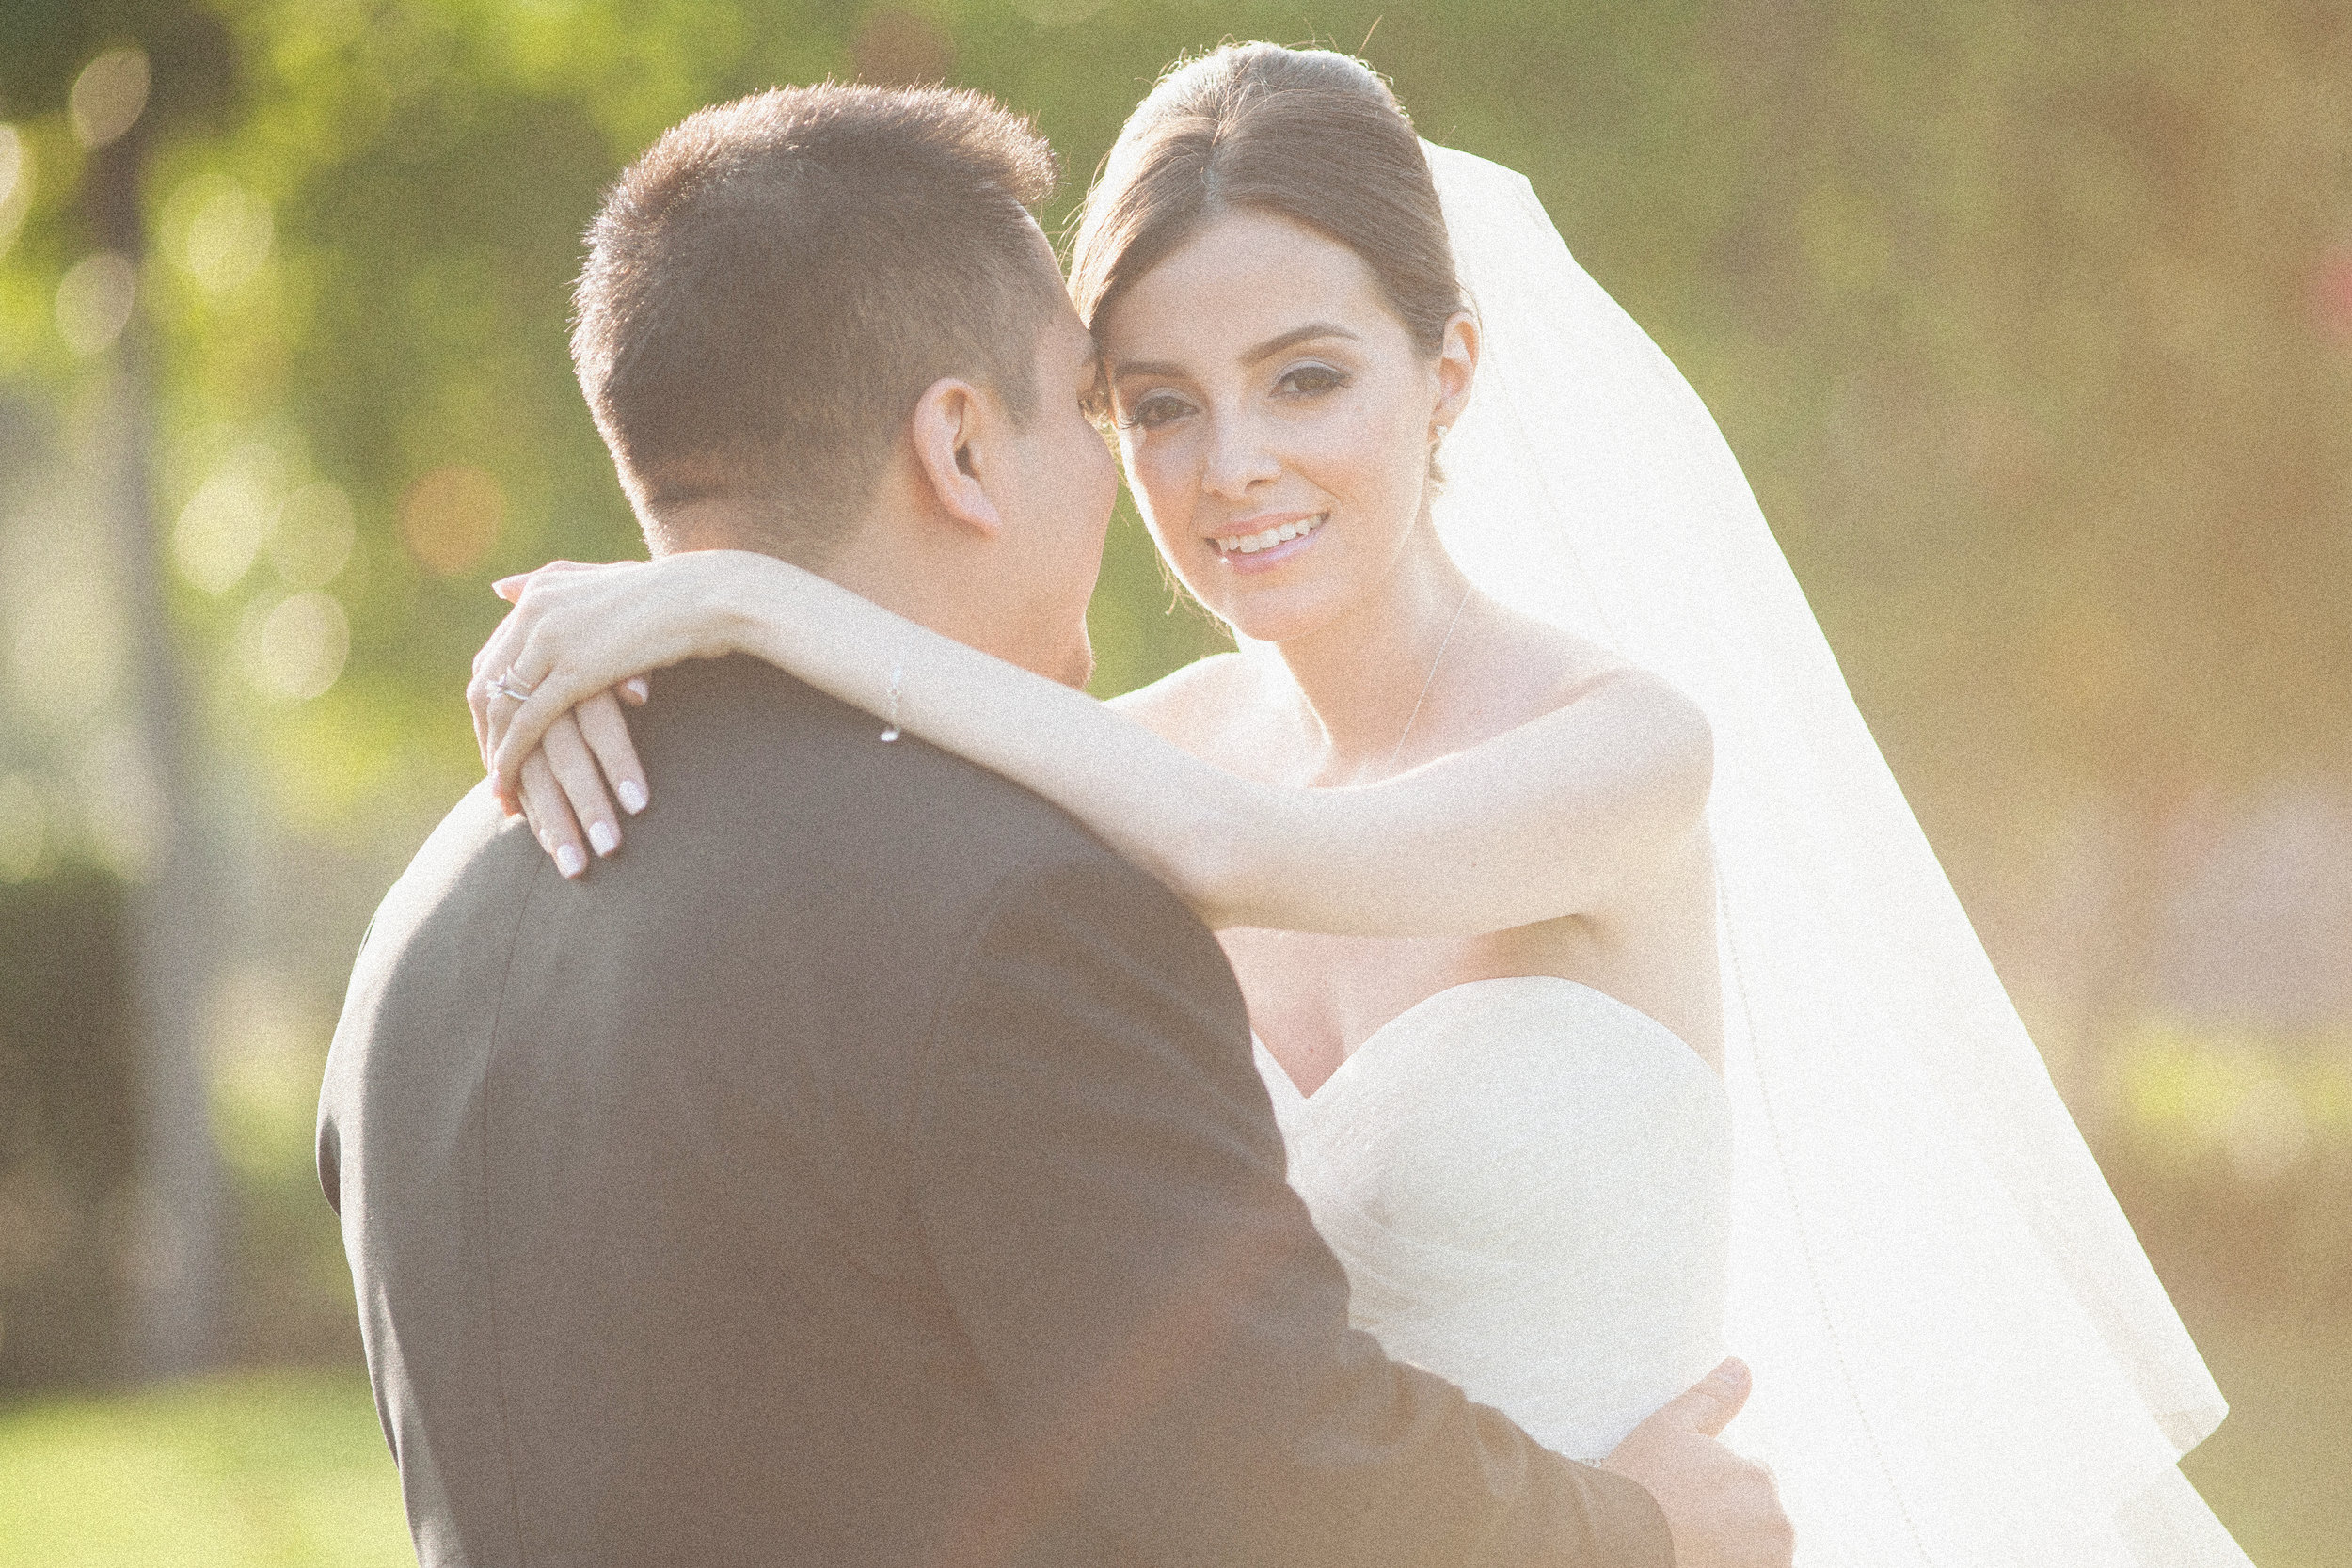 Diego + Allie - As a groom, I was delegated some of the